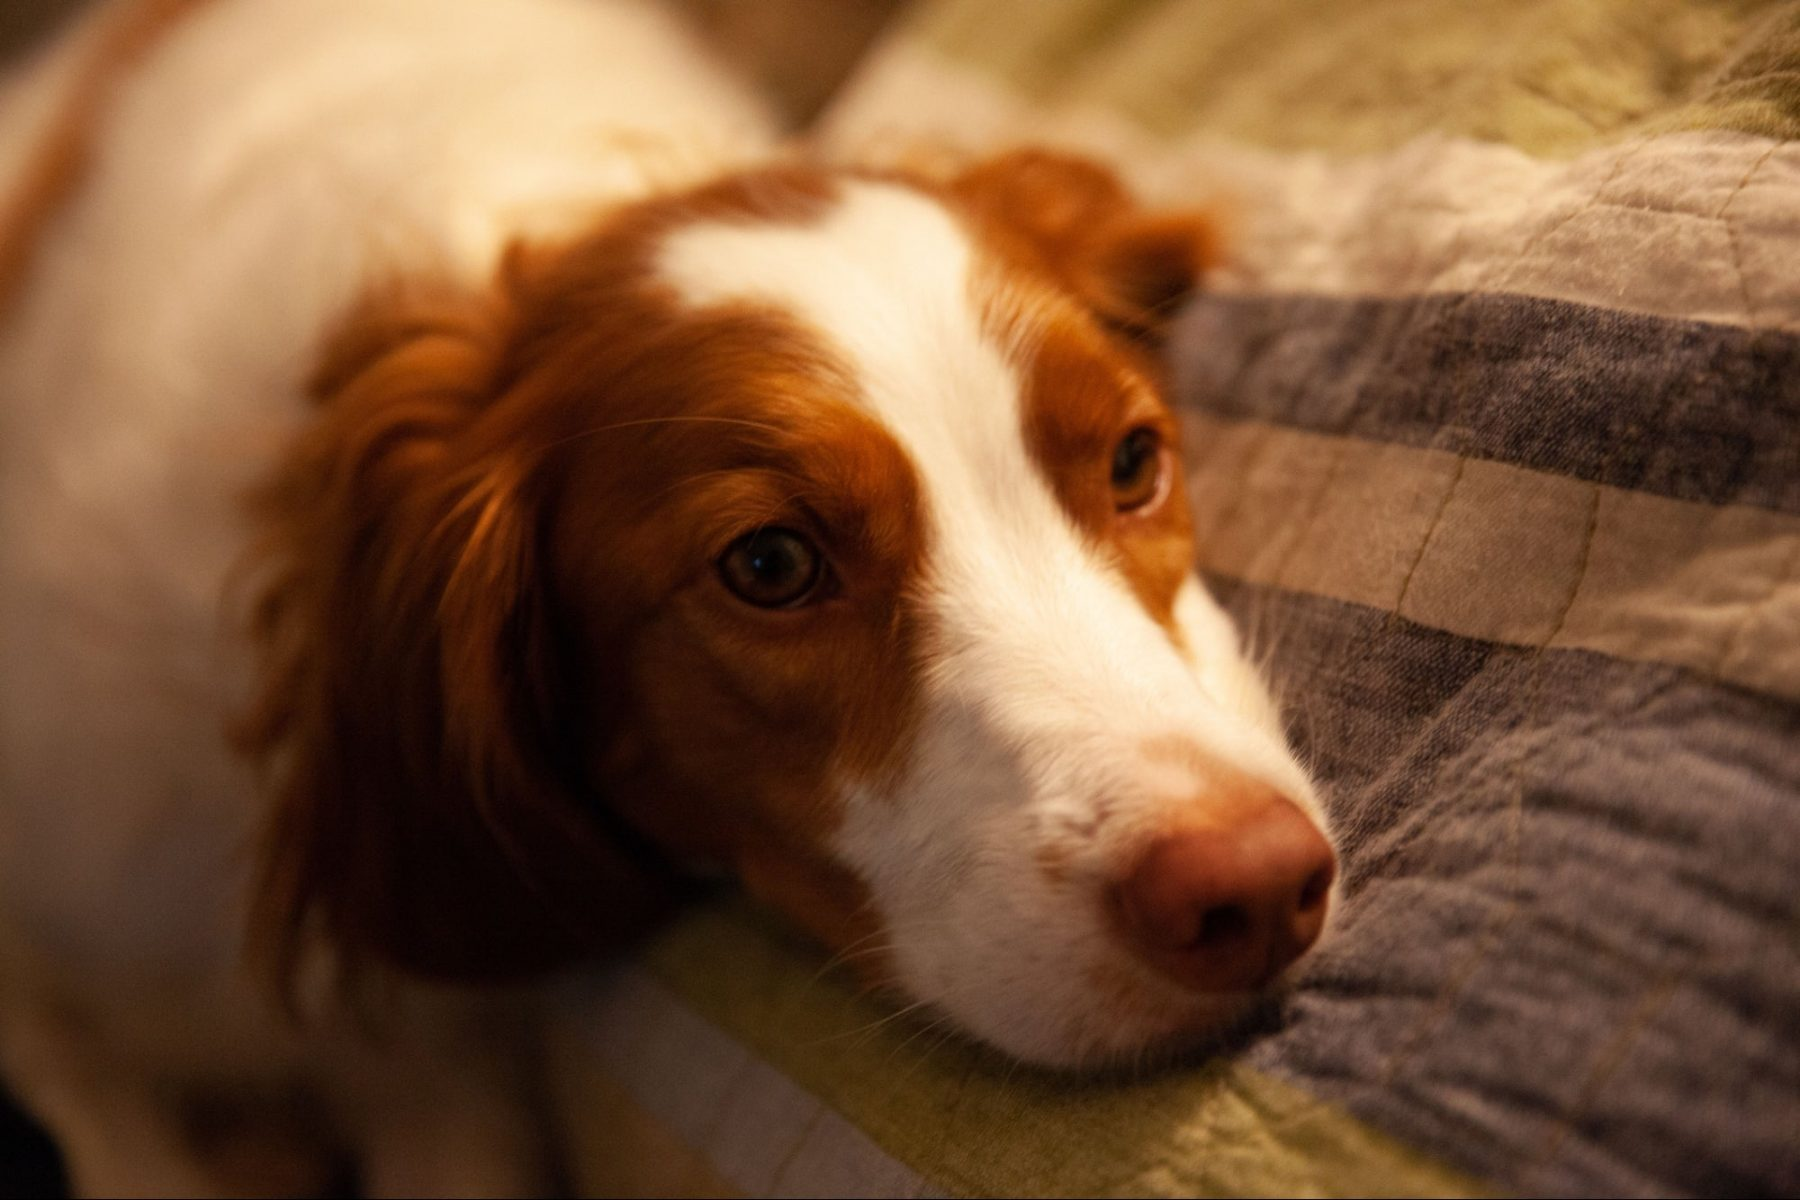 it's-national-dog-day.-have-you-seen-the-tiktok-famous-brittany-spaniel-that-walks-on-two-legs?